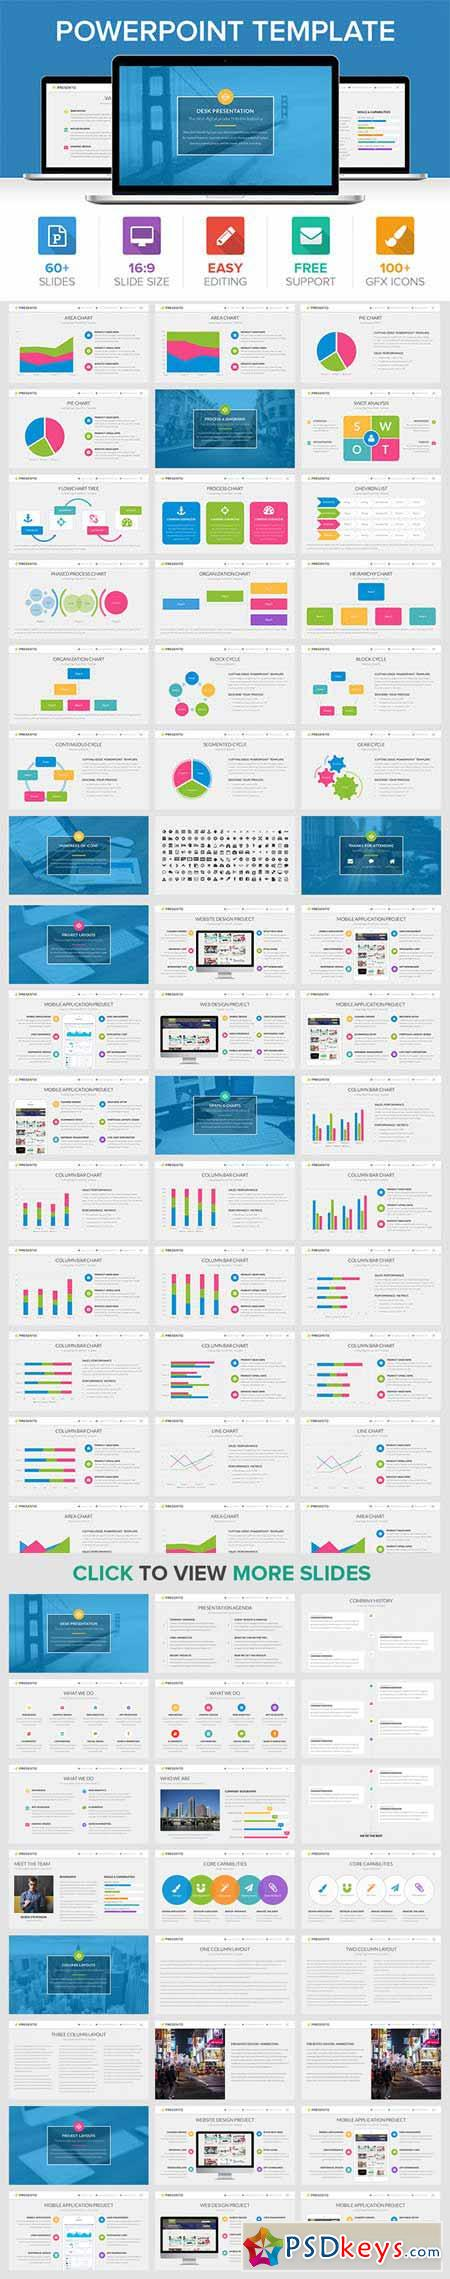 powerpoint templates torrents - presento powerpoint template 319517 free download